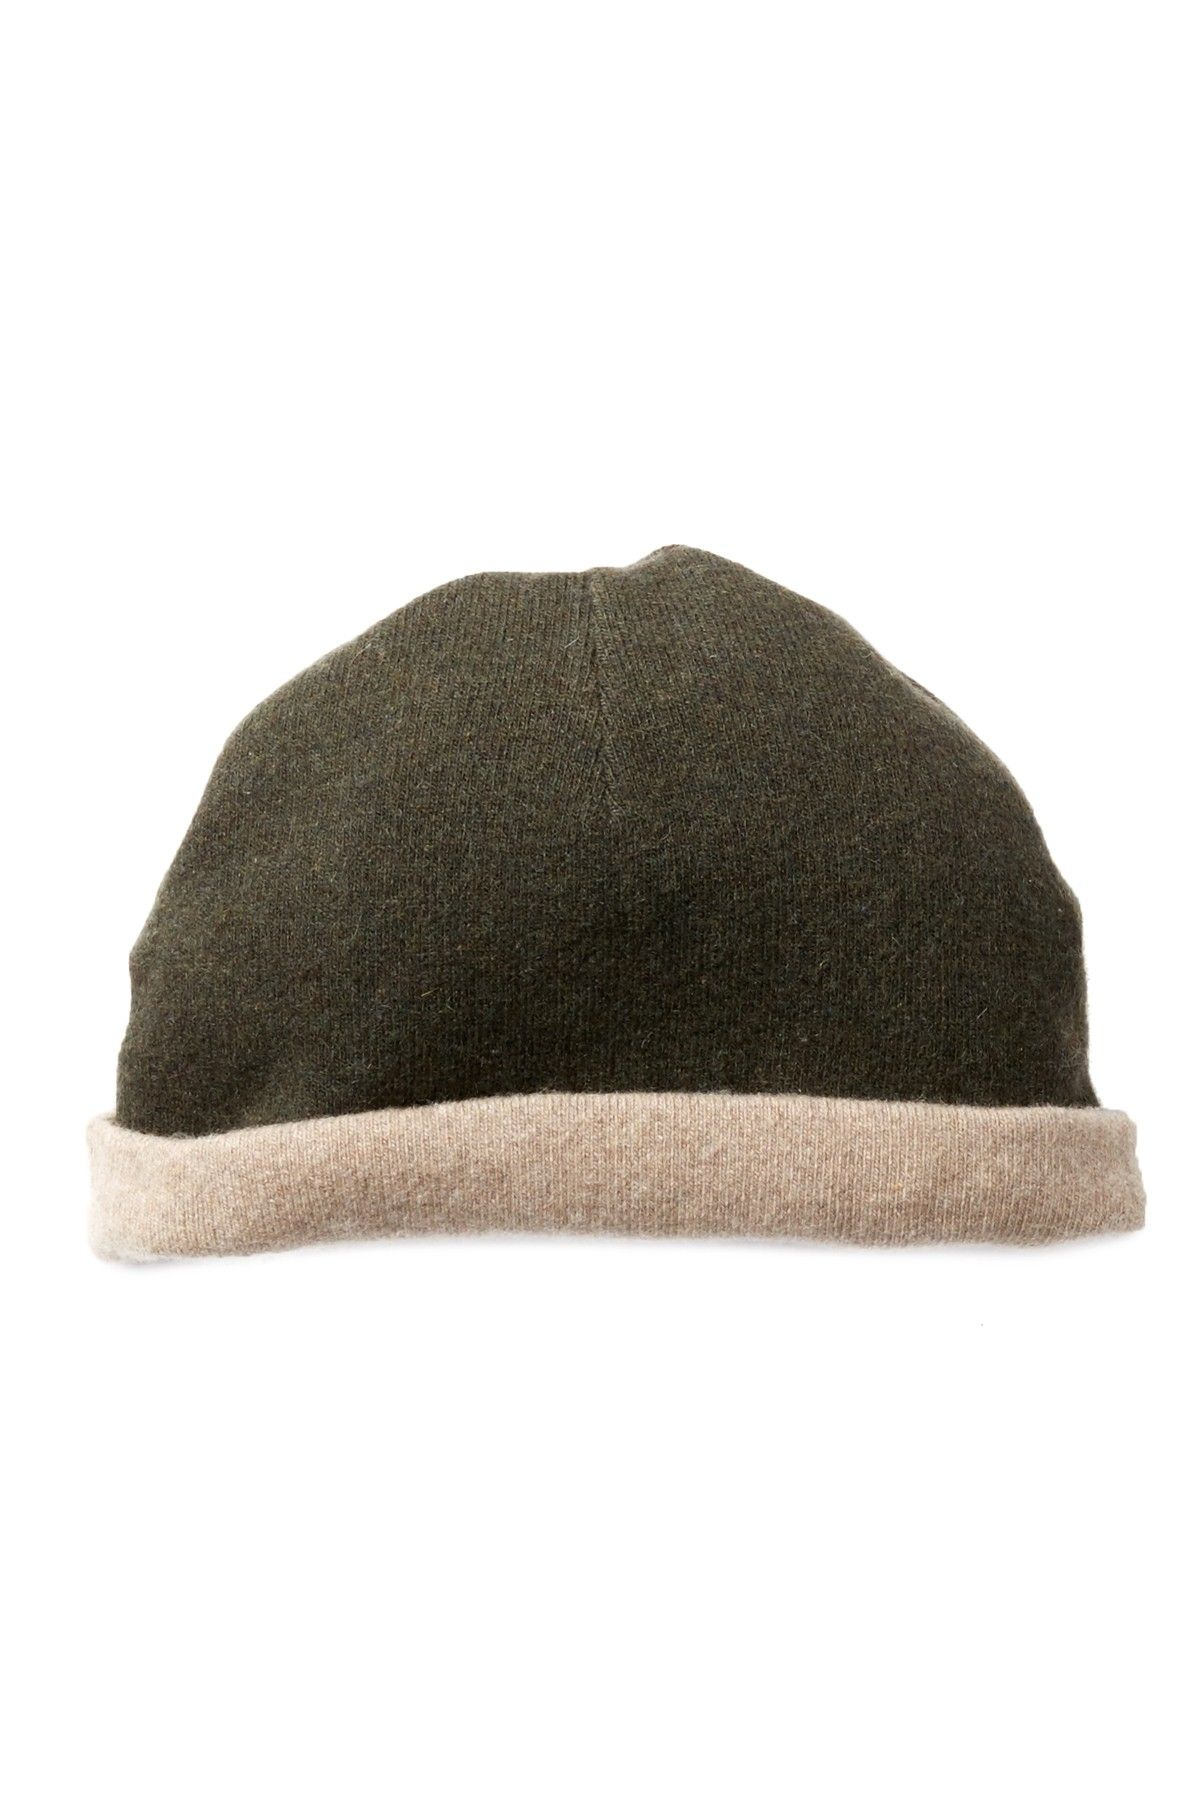 63fc81d4a50 Nile Brown   Green Reversible Cashmere Beanie